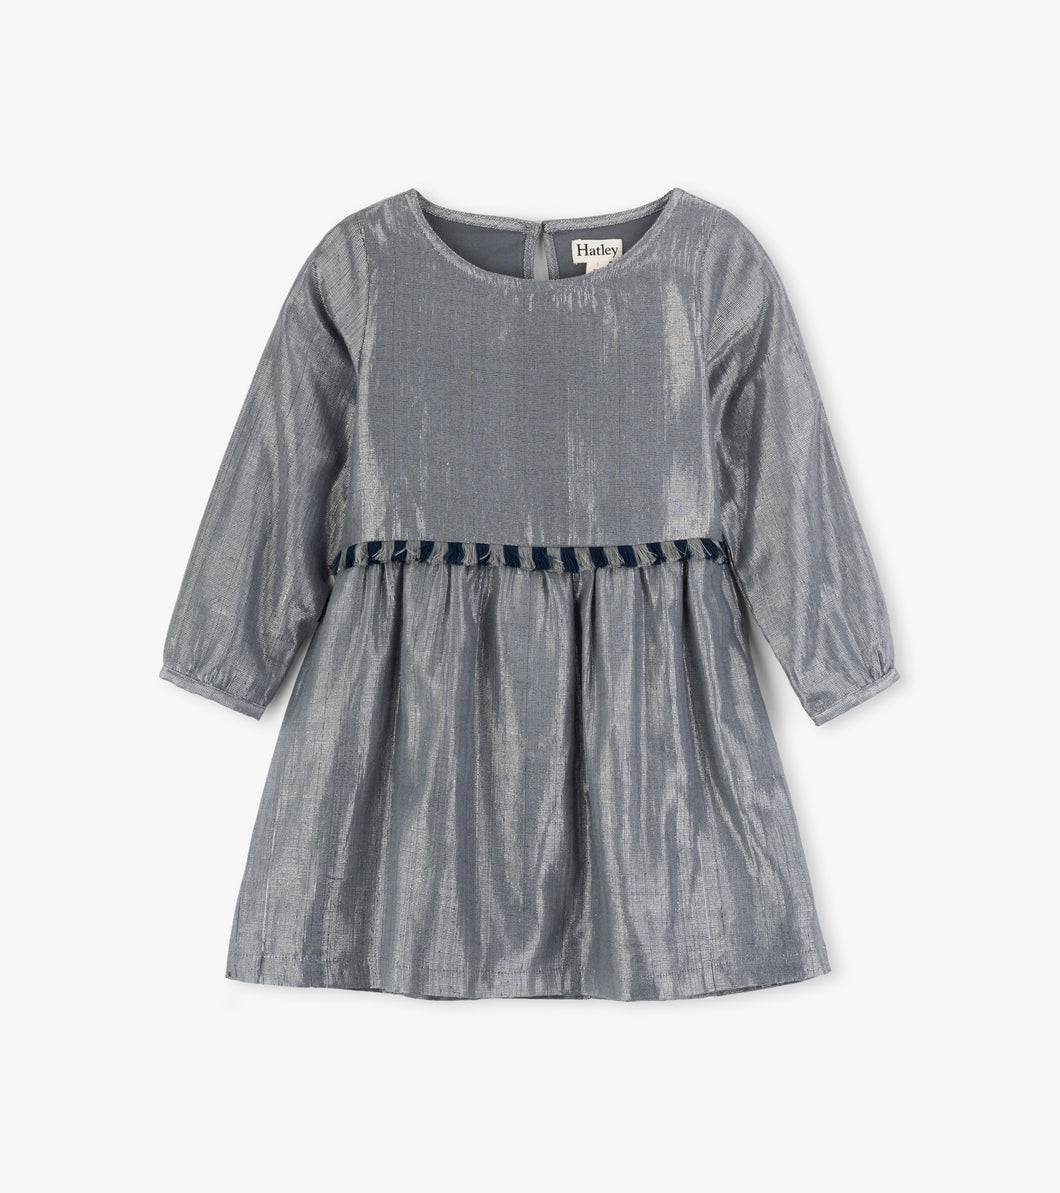 Metallic Silver Party Dress